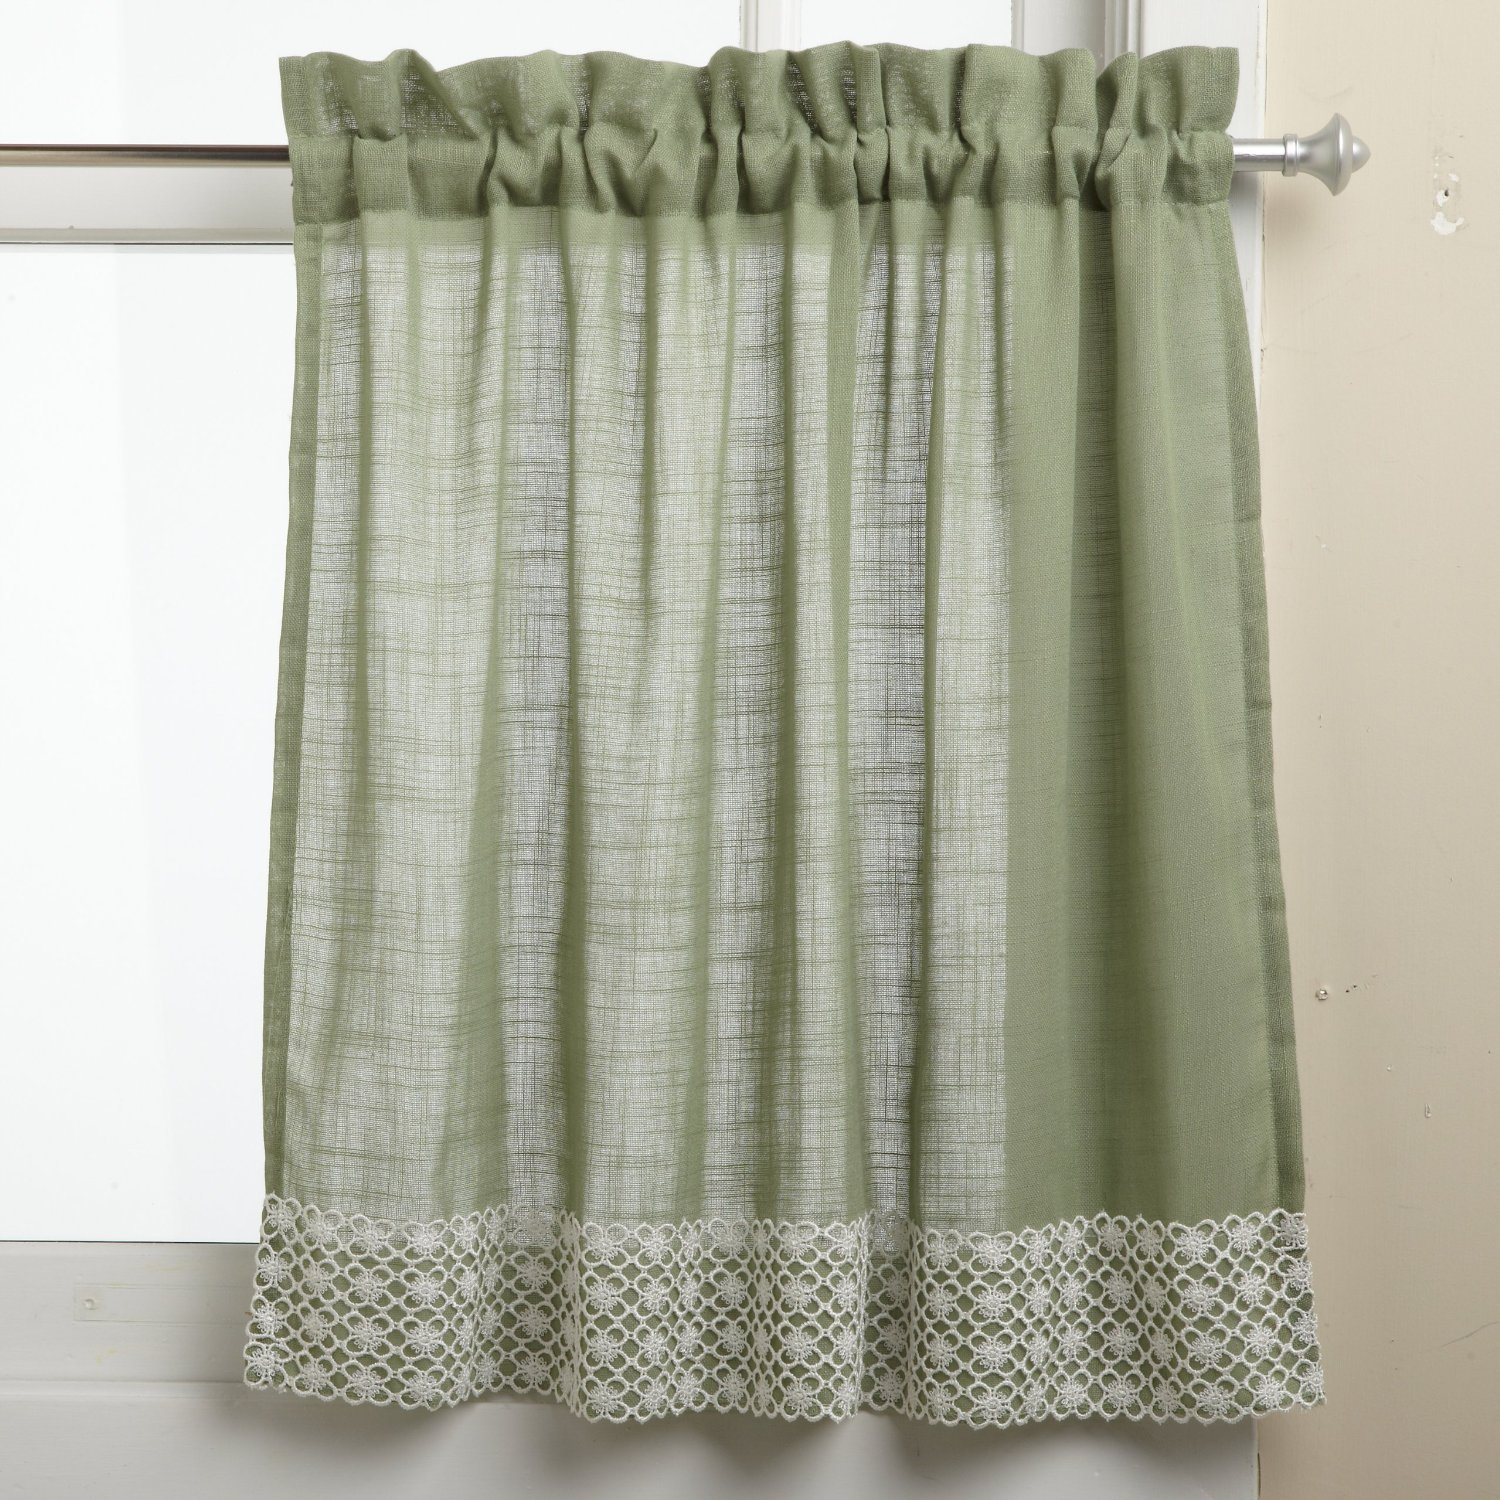 Small Curtains Models For Kitchens Interior Decorating Terms 2014